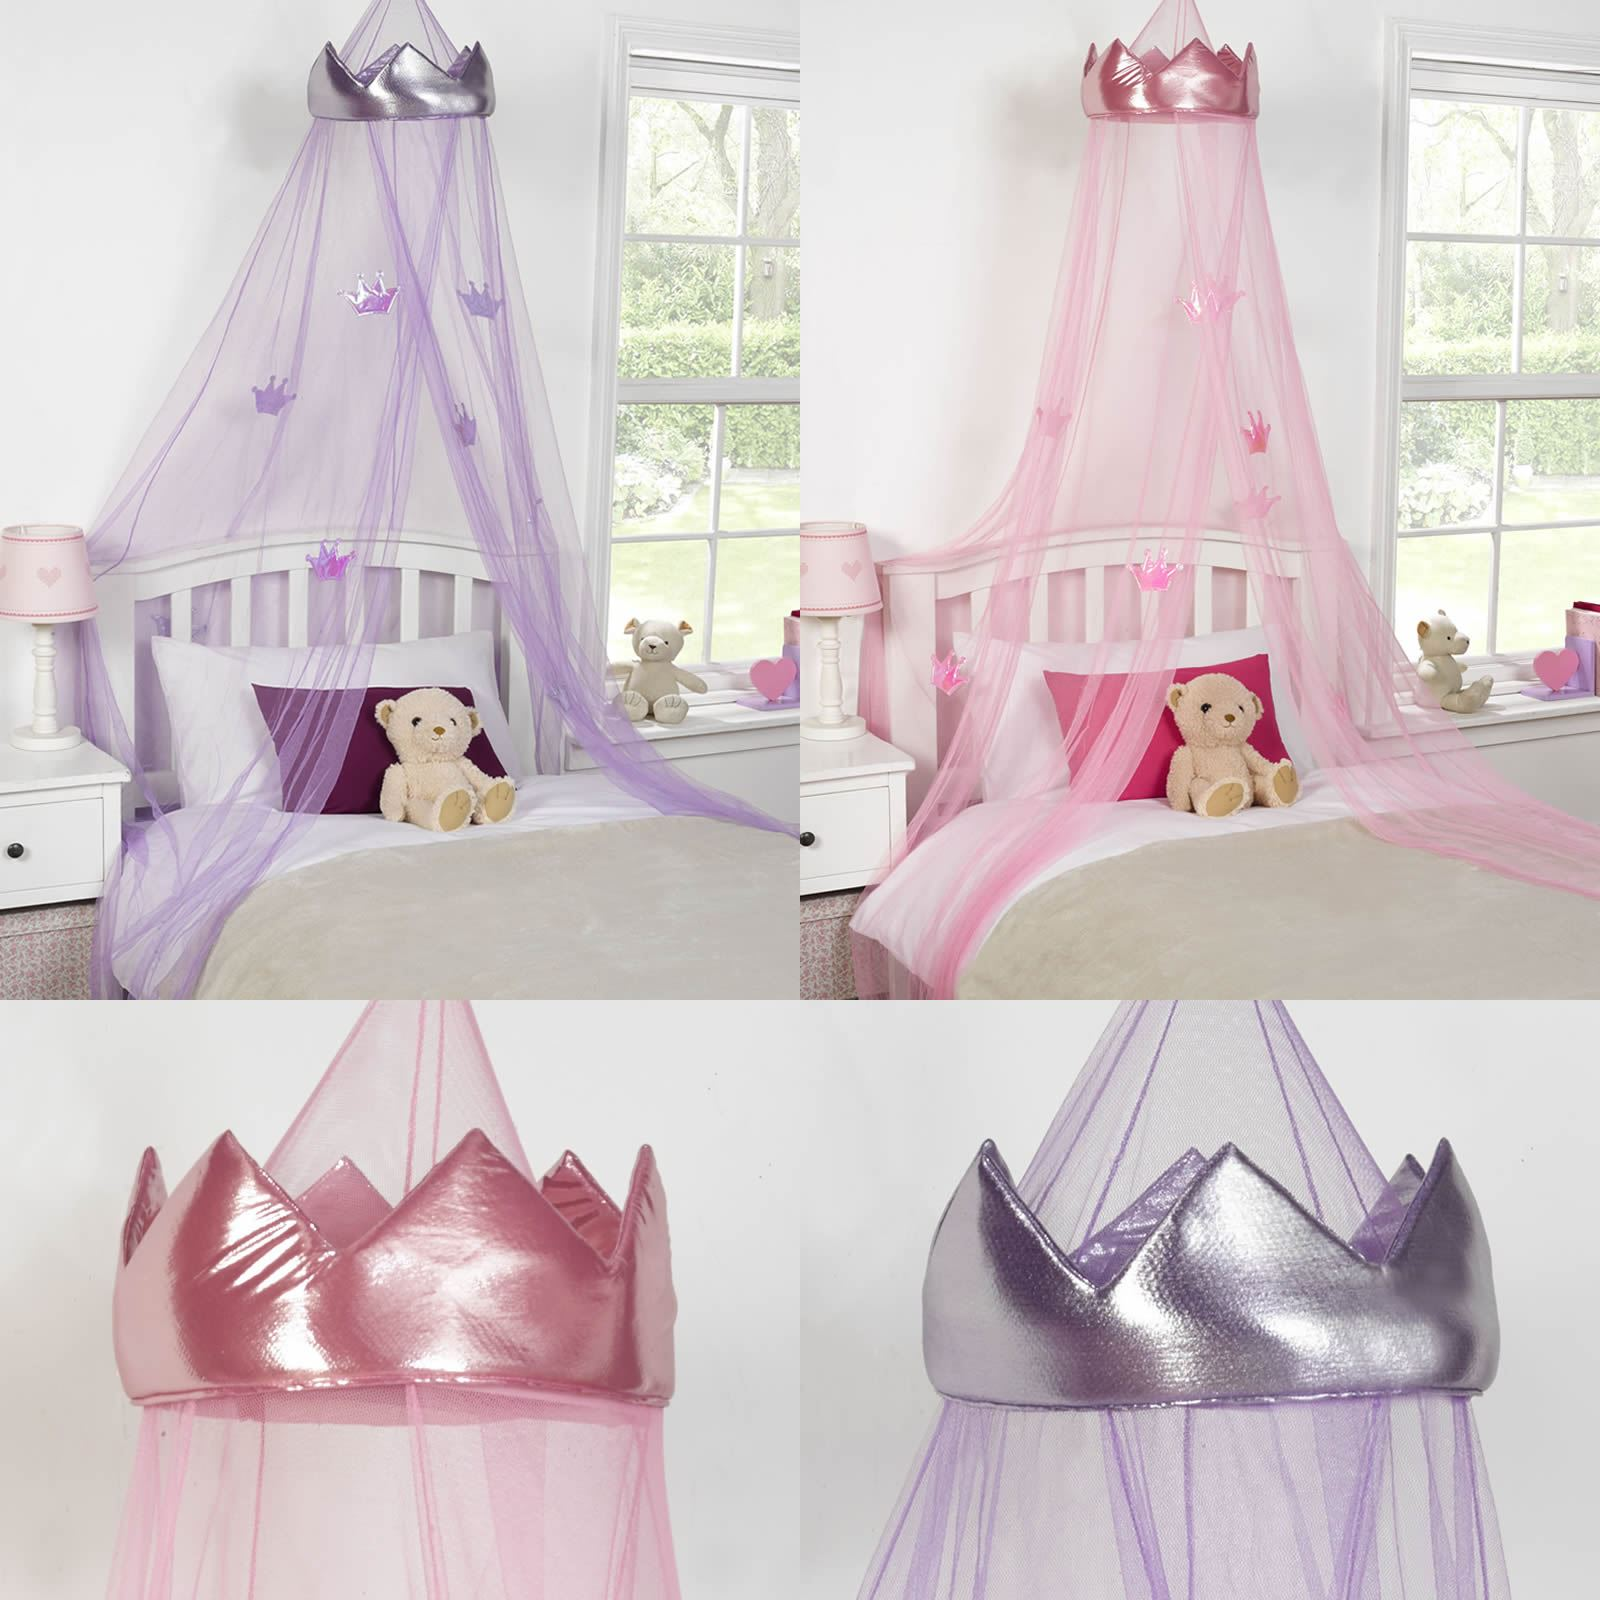 Easy Diy Princess Drapes Over Bed For Little Lady